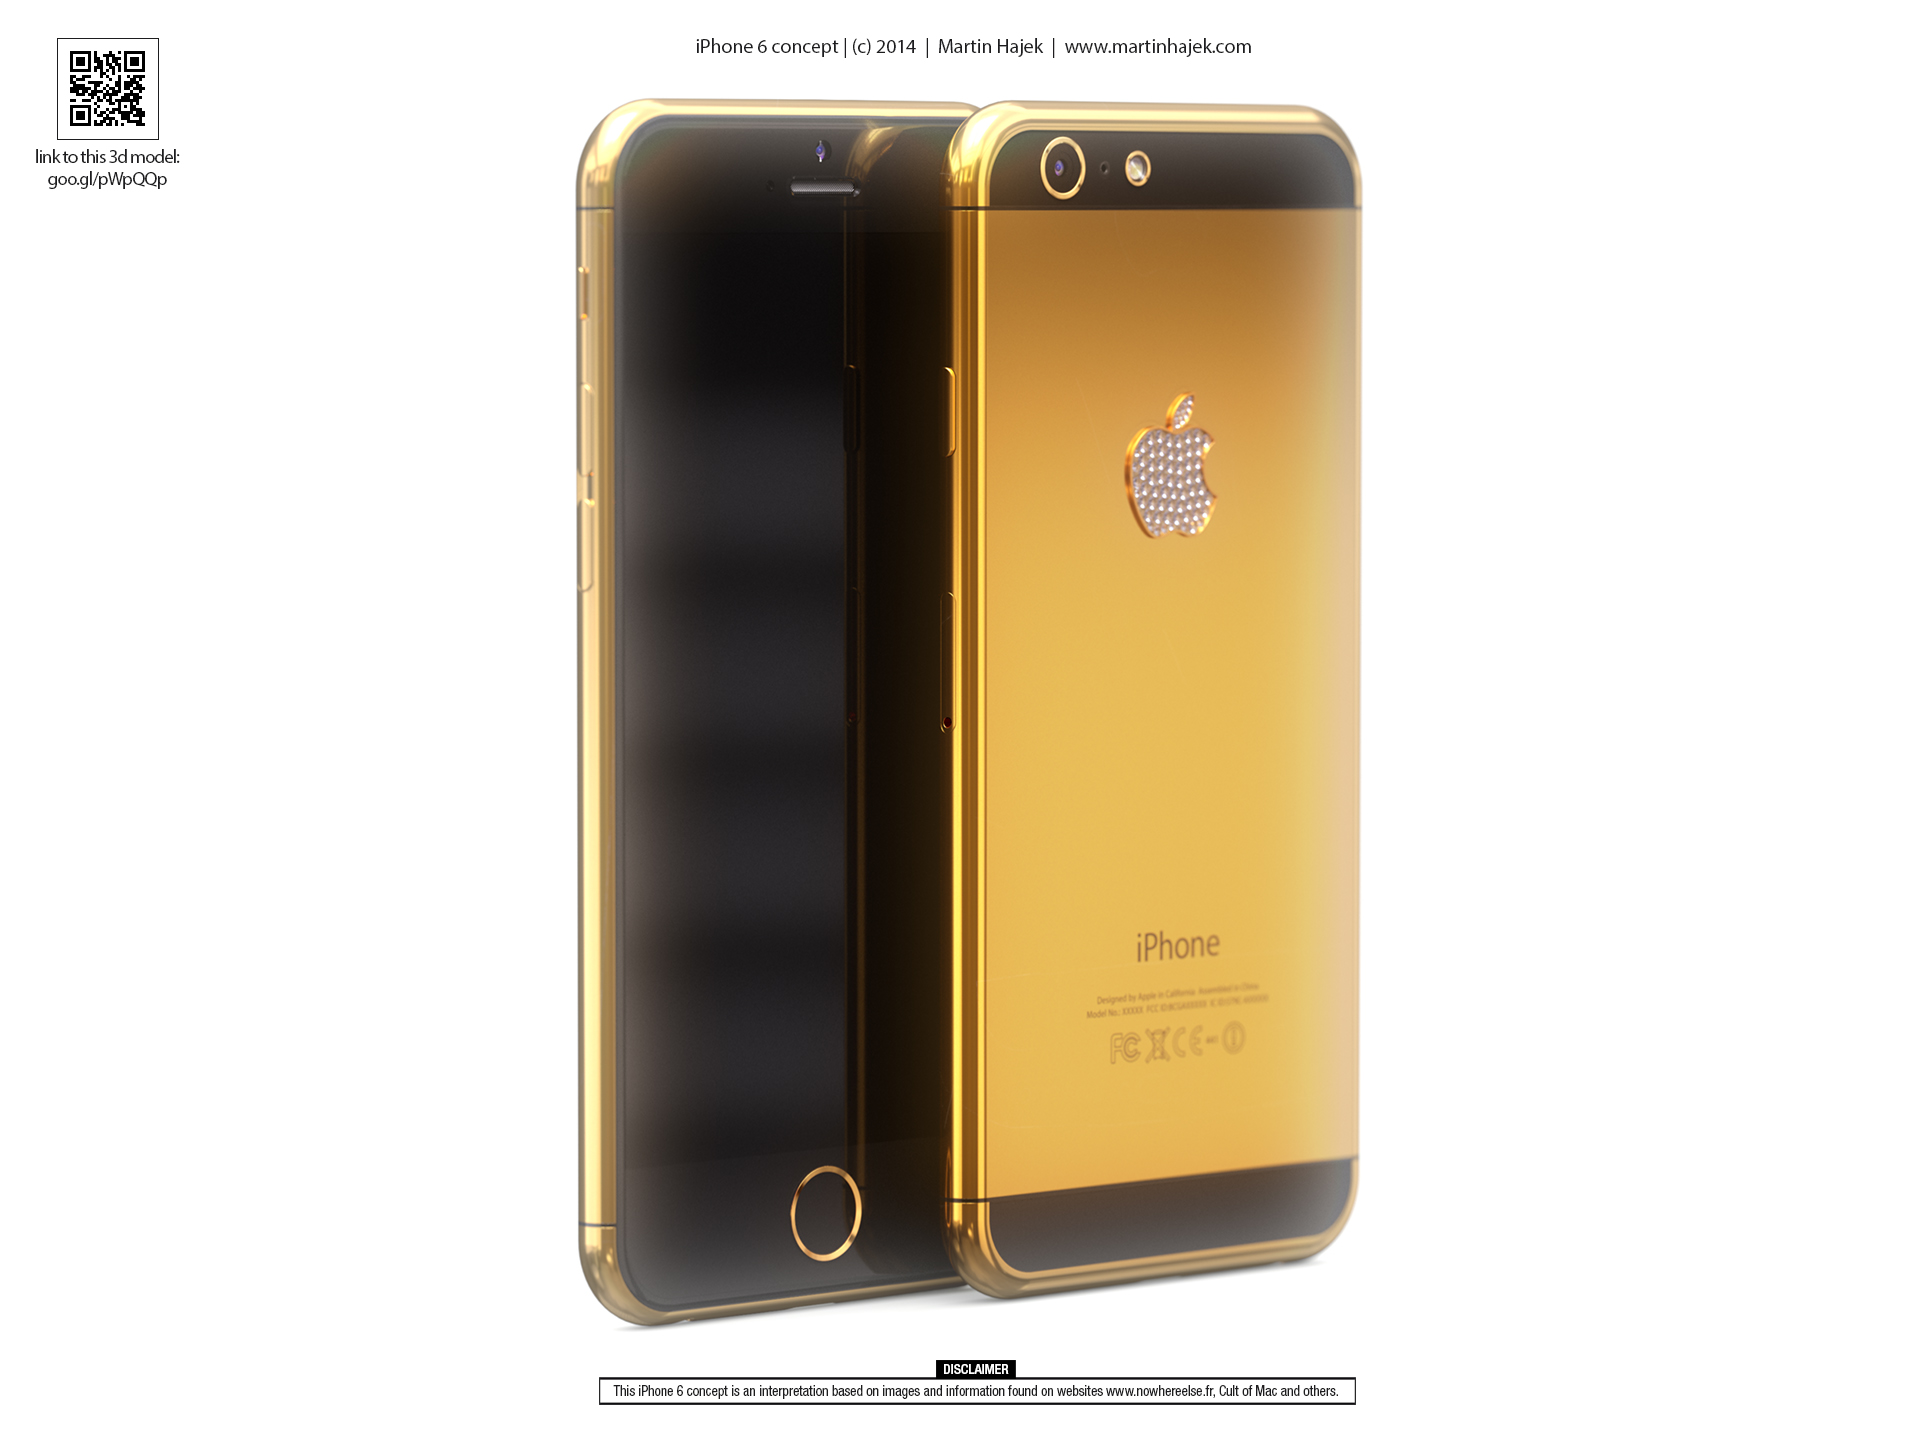 Luxury-iPhone-6-concept-design